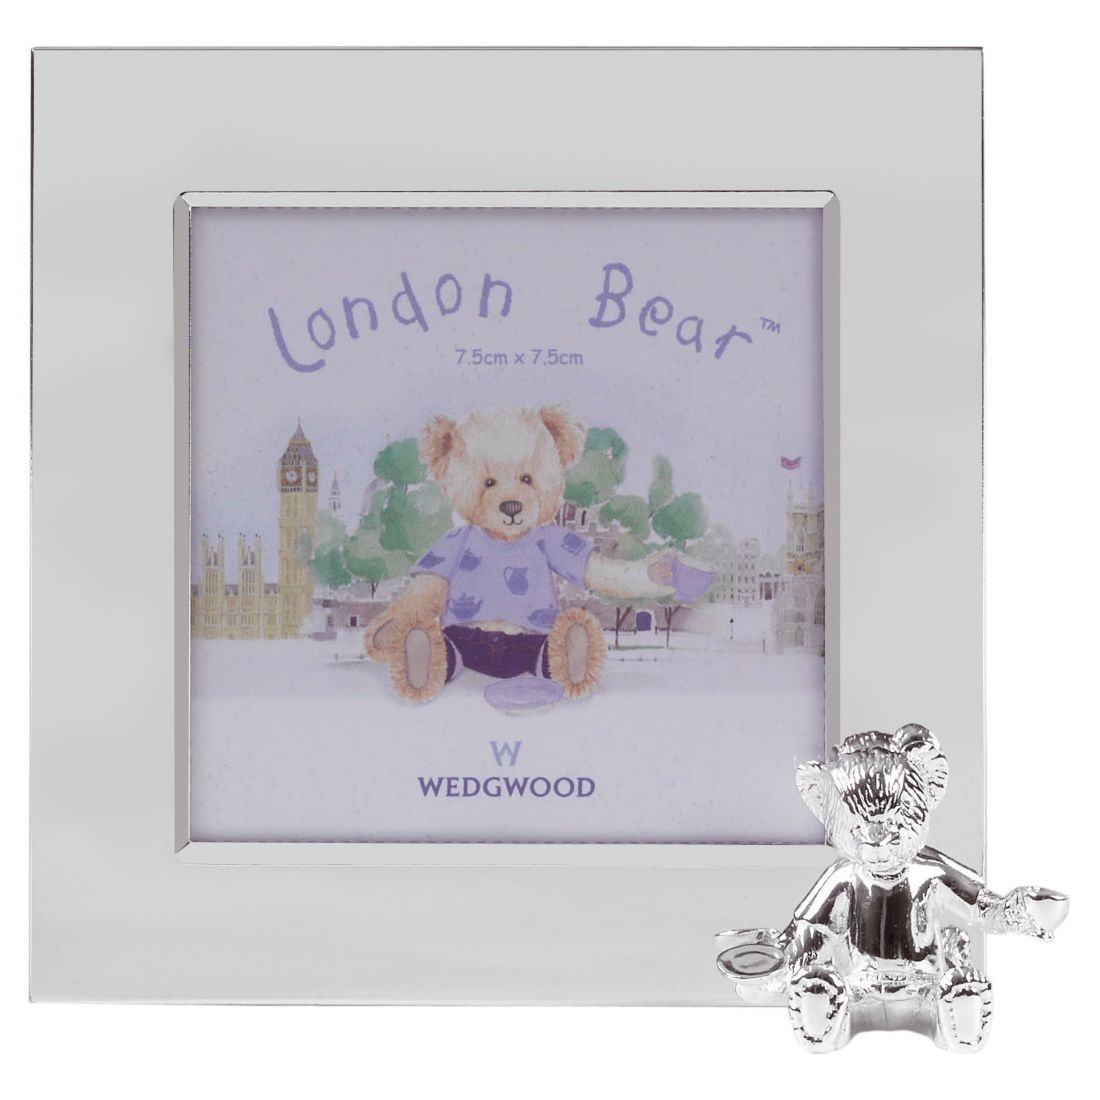 London bear silver photo frame 8x8 cm